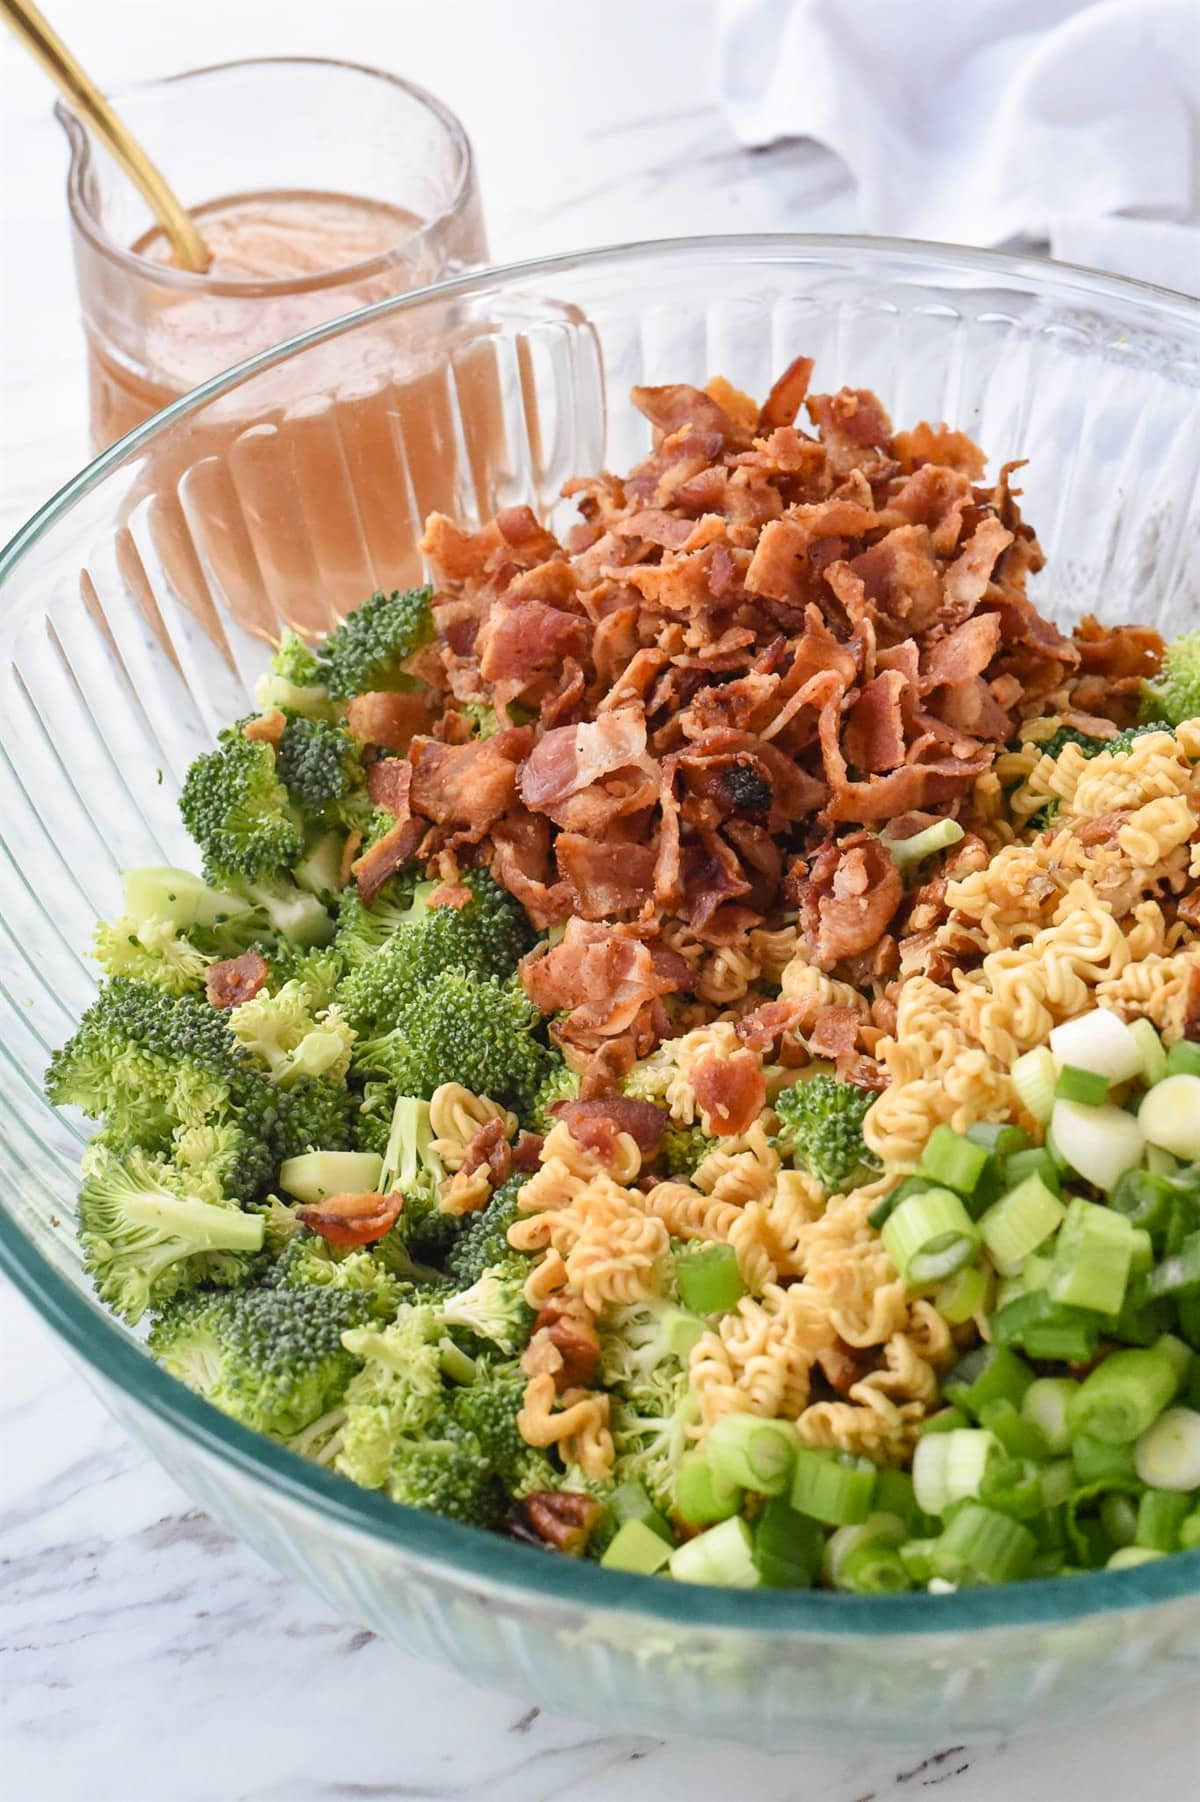 broccoli crunch salad ingredients in a bowl